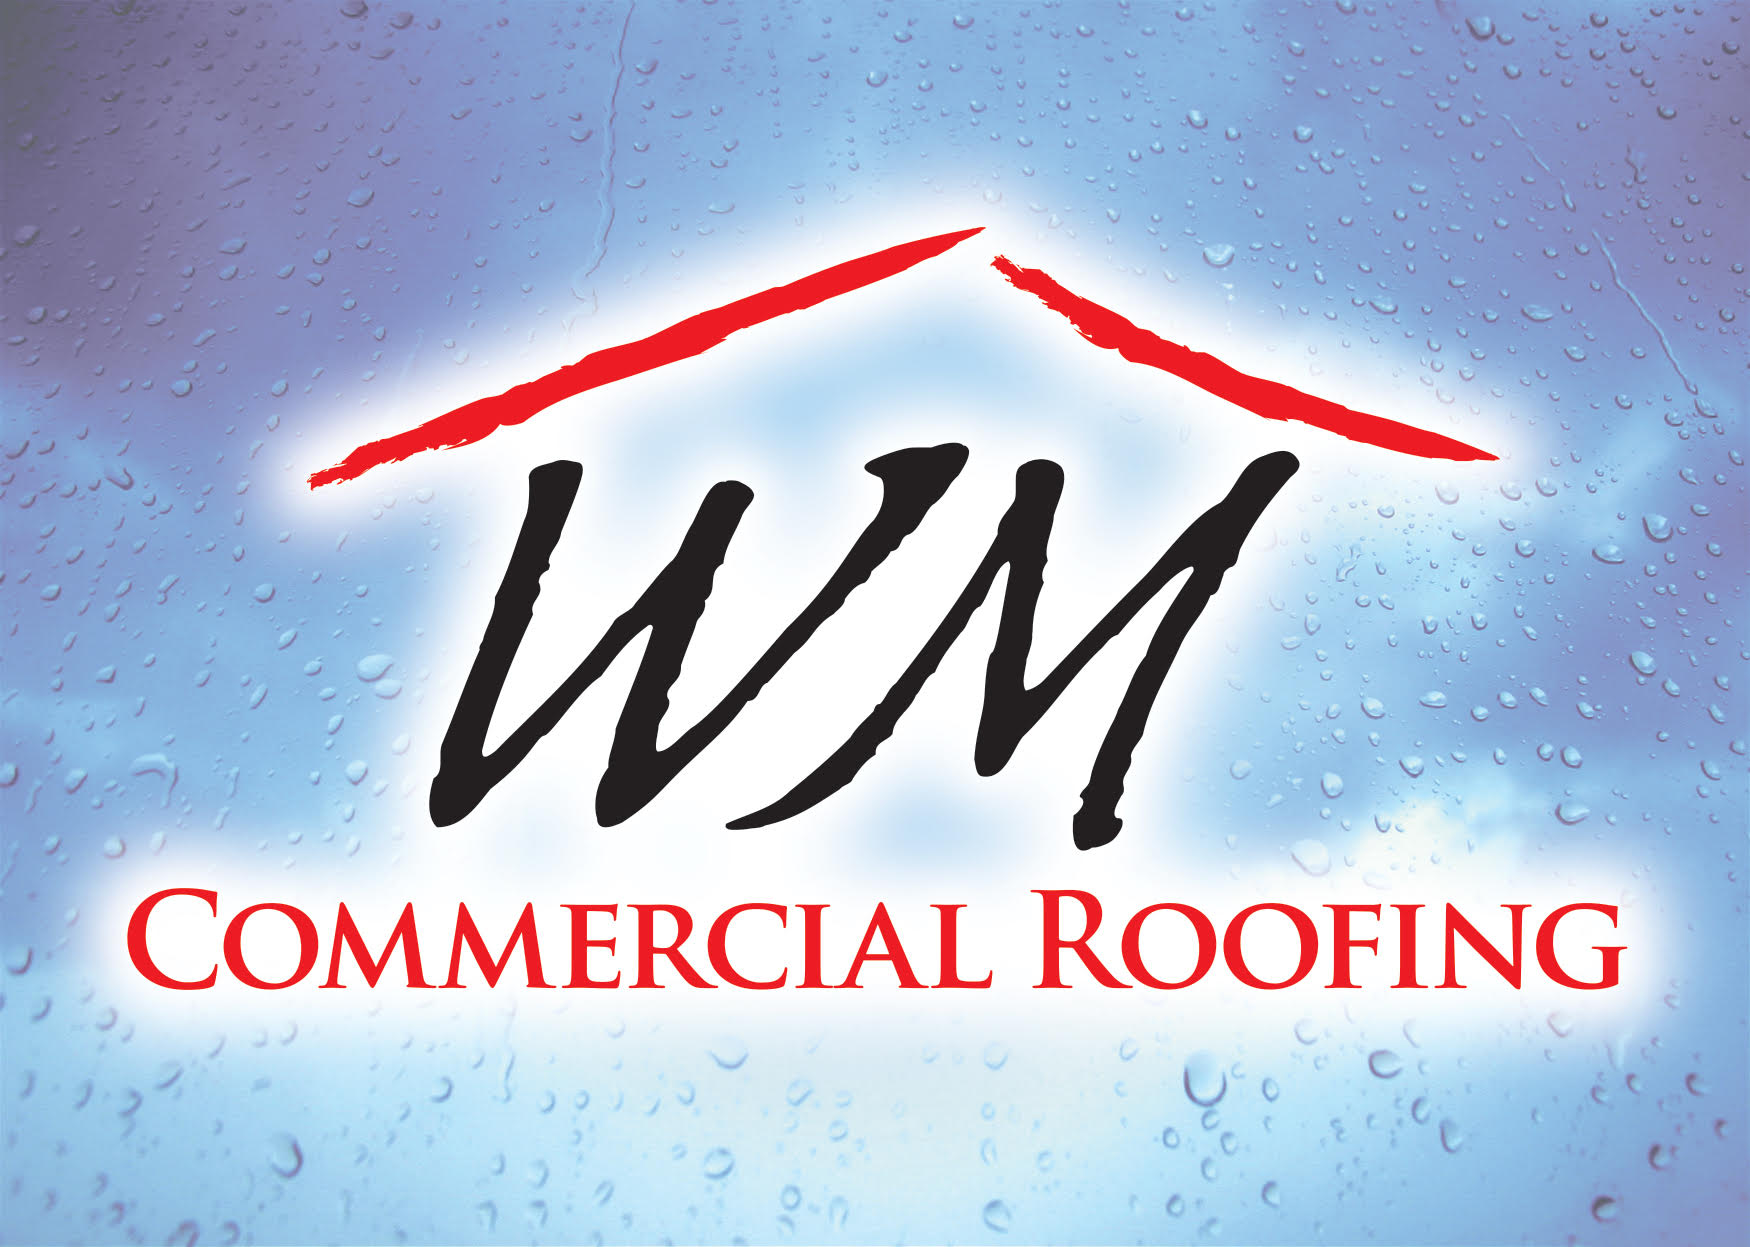 Wm Commercial Roofing White Roofing Systems